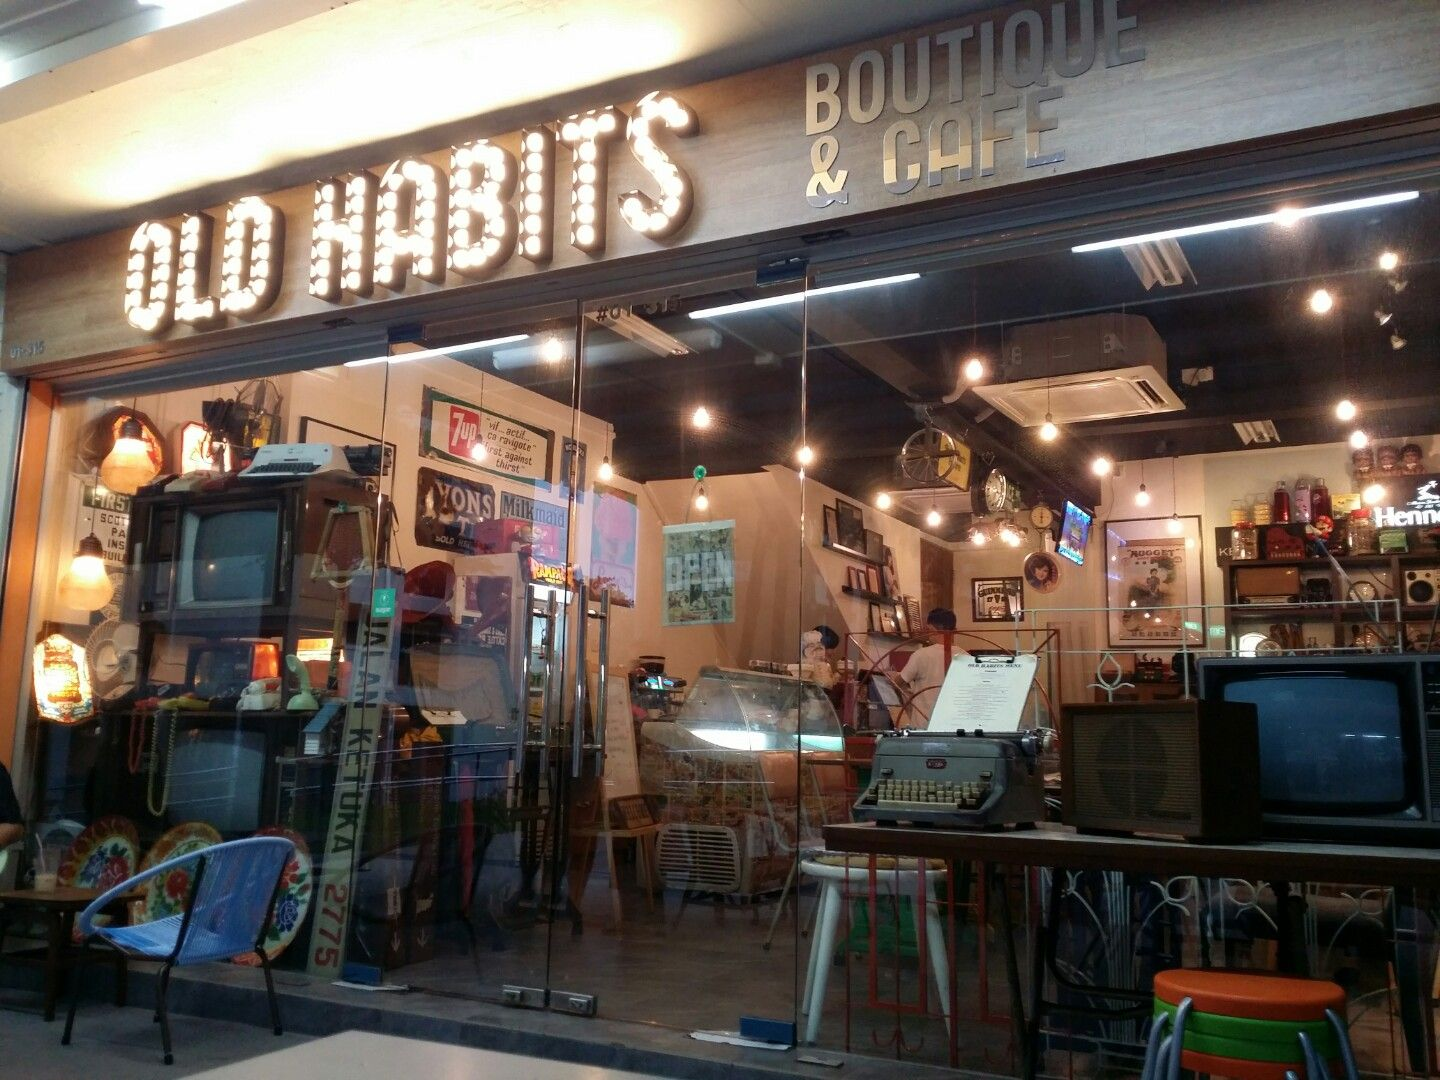 Old Habits Boutique Cafe Cafe Cafe Restaurant Boutique